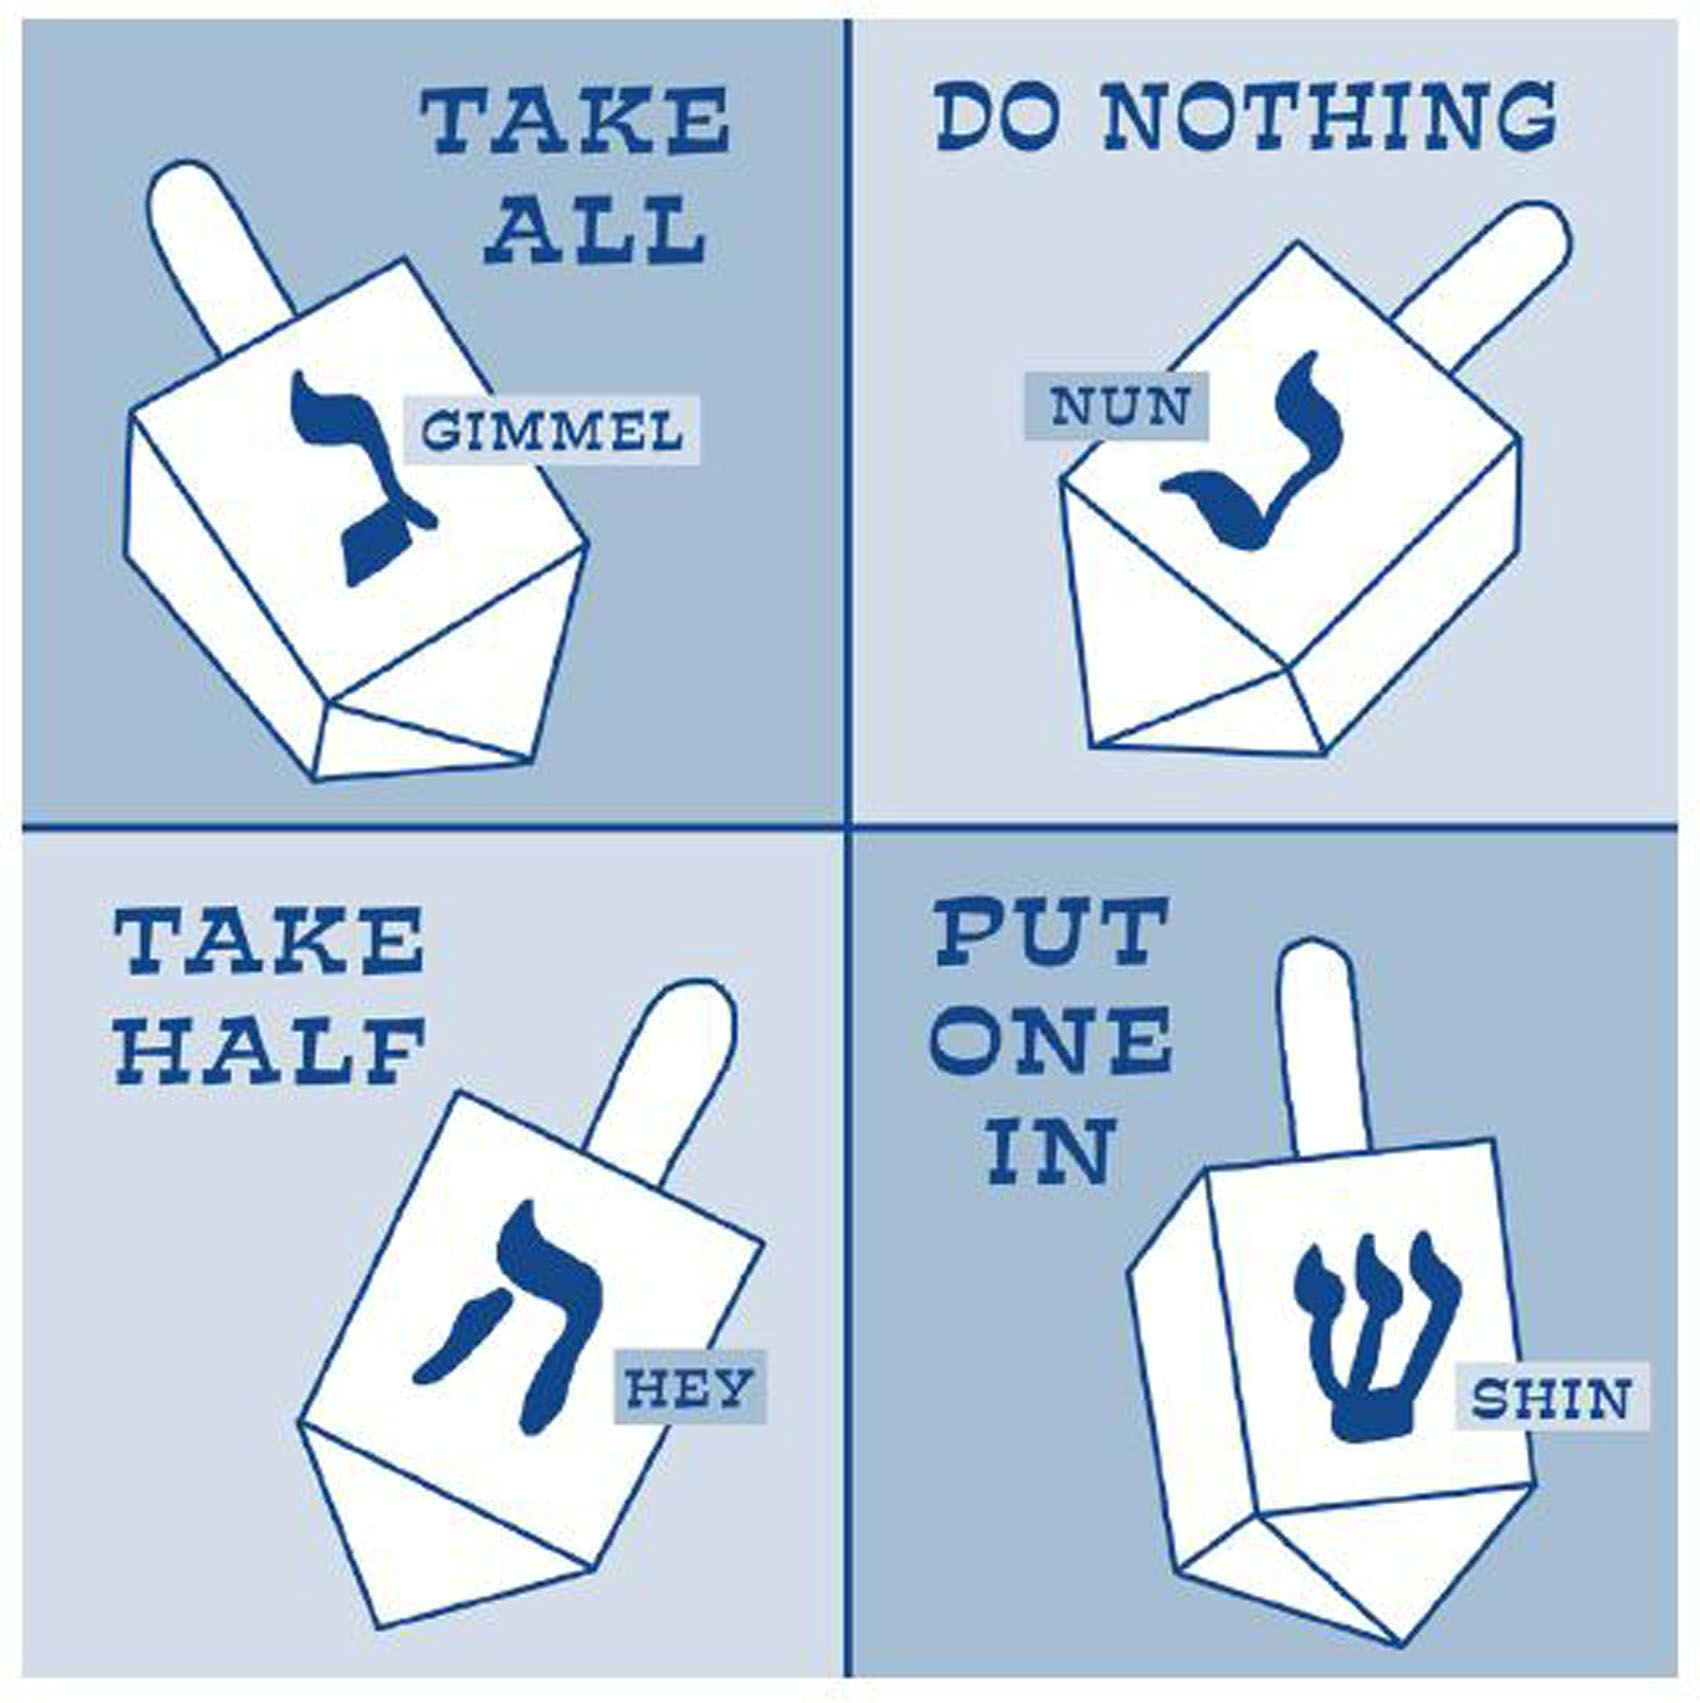 photograph regarding How to Play Dreidel Printable identify Spin the Dreidel - Hanukkah Puzzles and Things to do for Small children